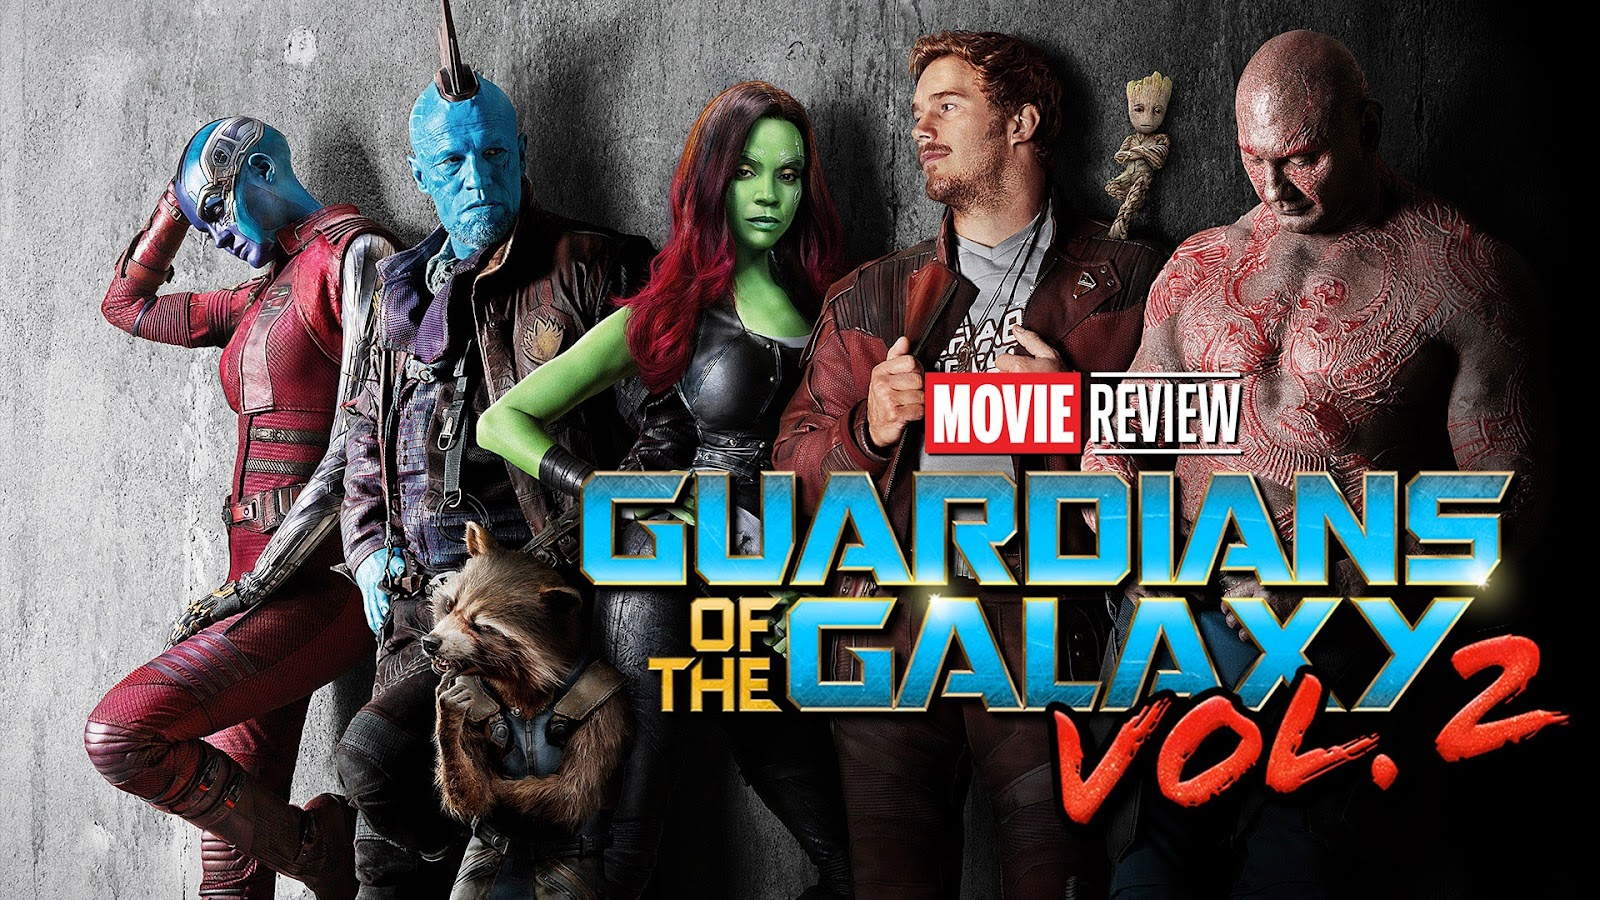 movie review GUARDIANS OF THE GALAXY VOL. 2 podcast